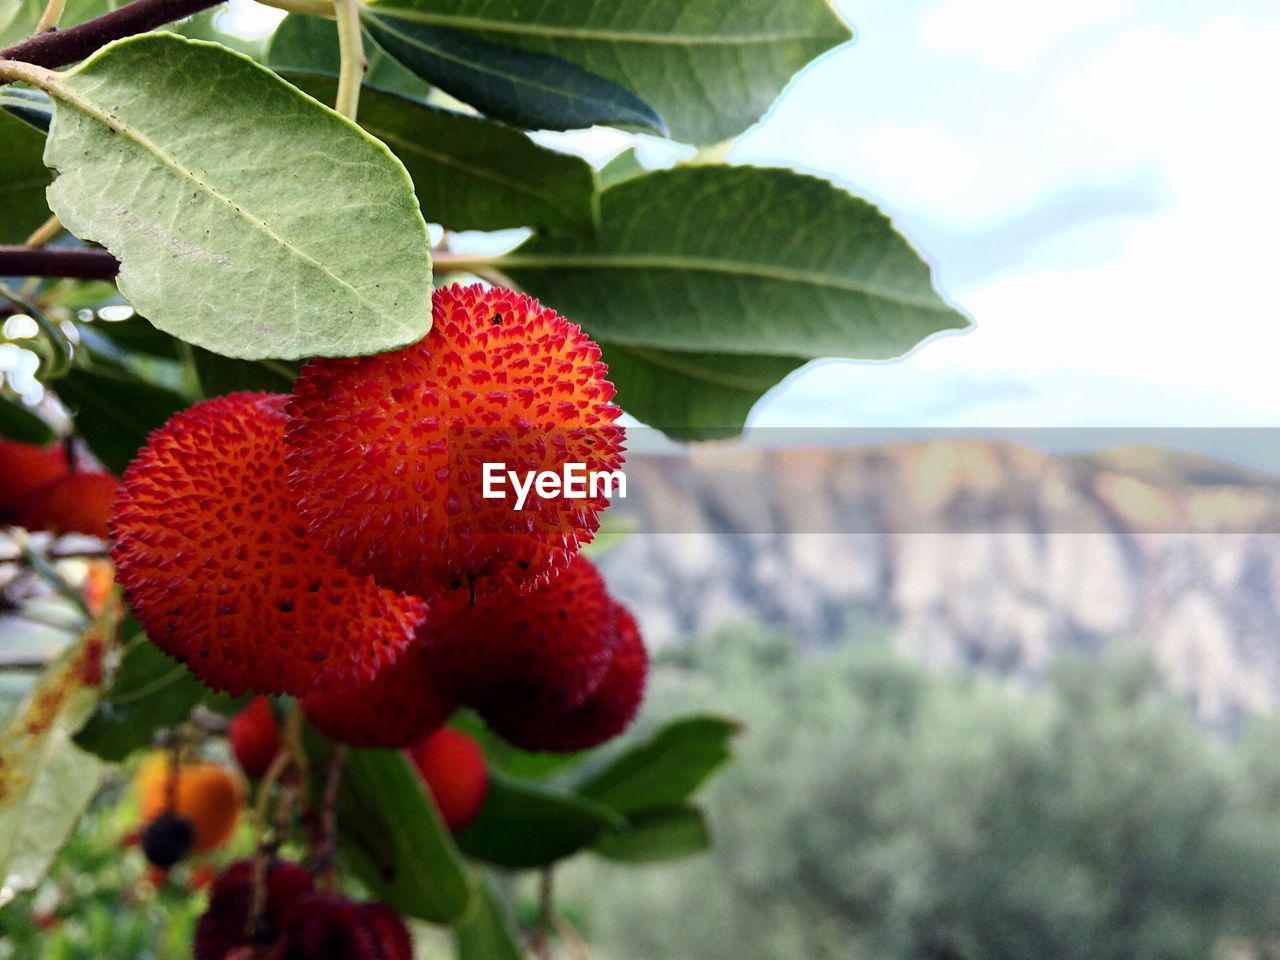 fruit, red, leaf, food and drink, growth, food, healthy eating, freshness, day, ripe, plant, no people, outdoors, close-up, tree, nature, agriculture, beauty in nature